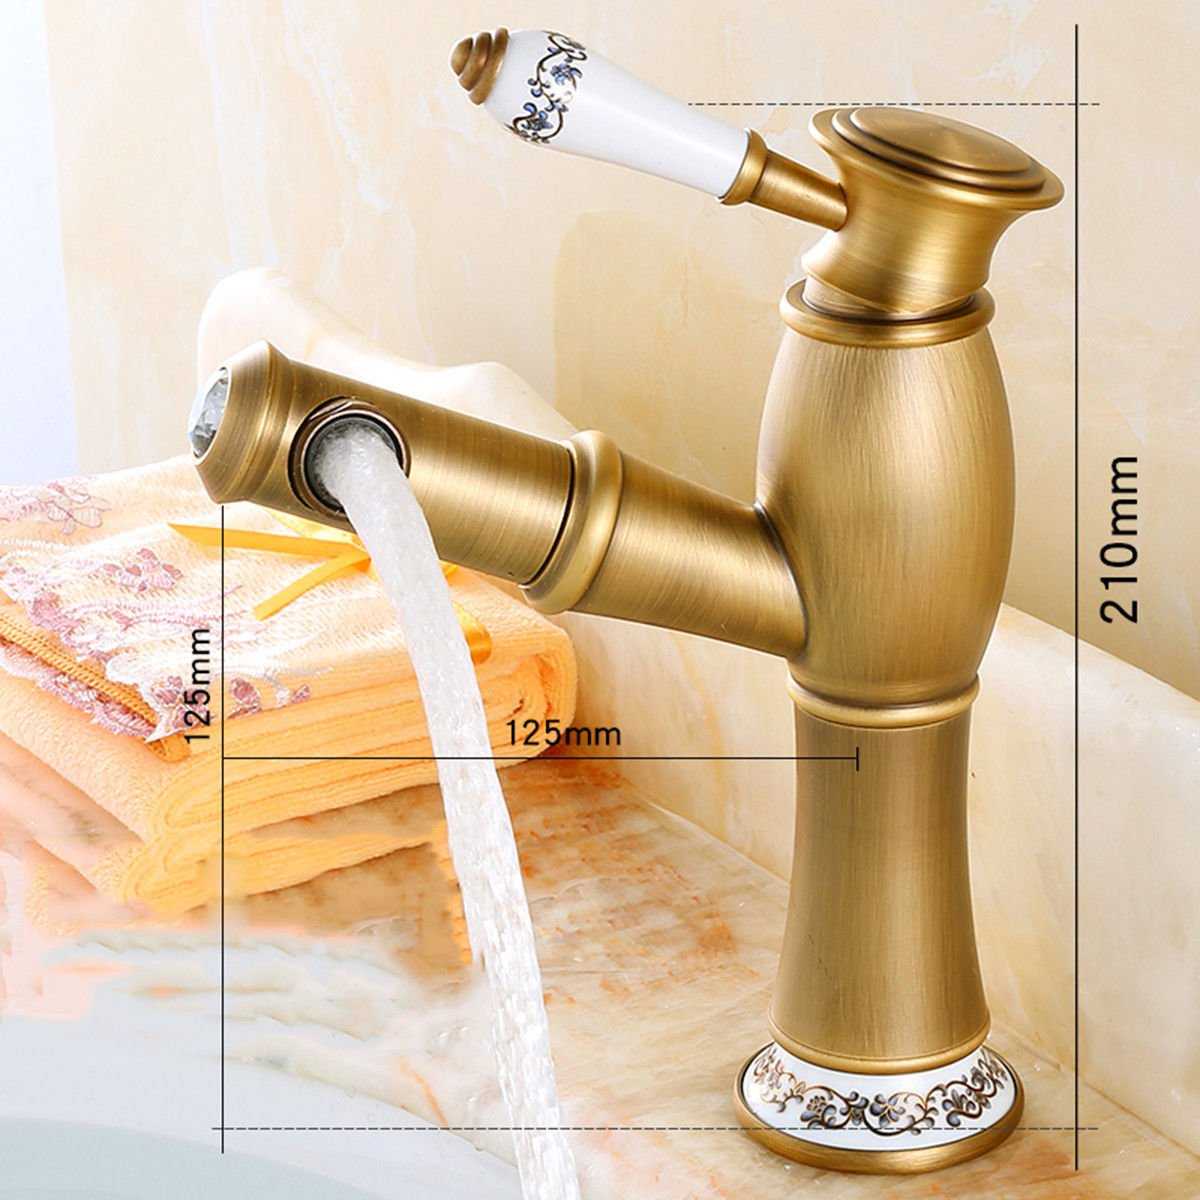 B NewBorn Faucet Kitchen Or Bathroom Sink Mixer Tap Black Water Tap Basin Water Taps For Cold And Hot Face-Down On The Tub Water Tap Antique Wash-Basin Water Water Tap D